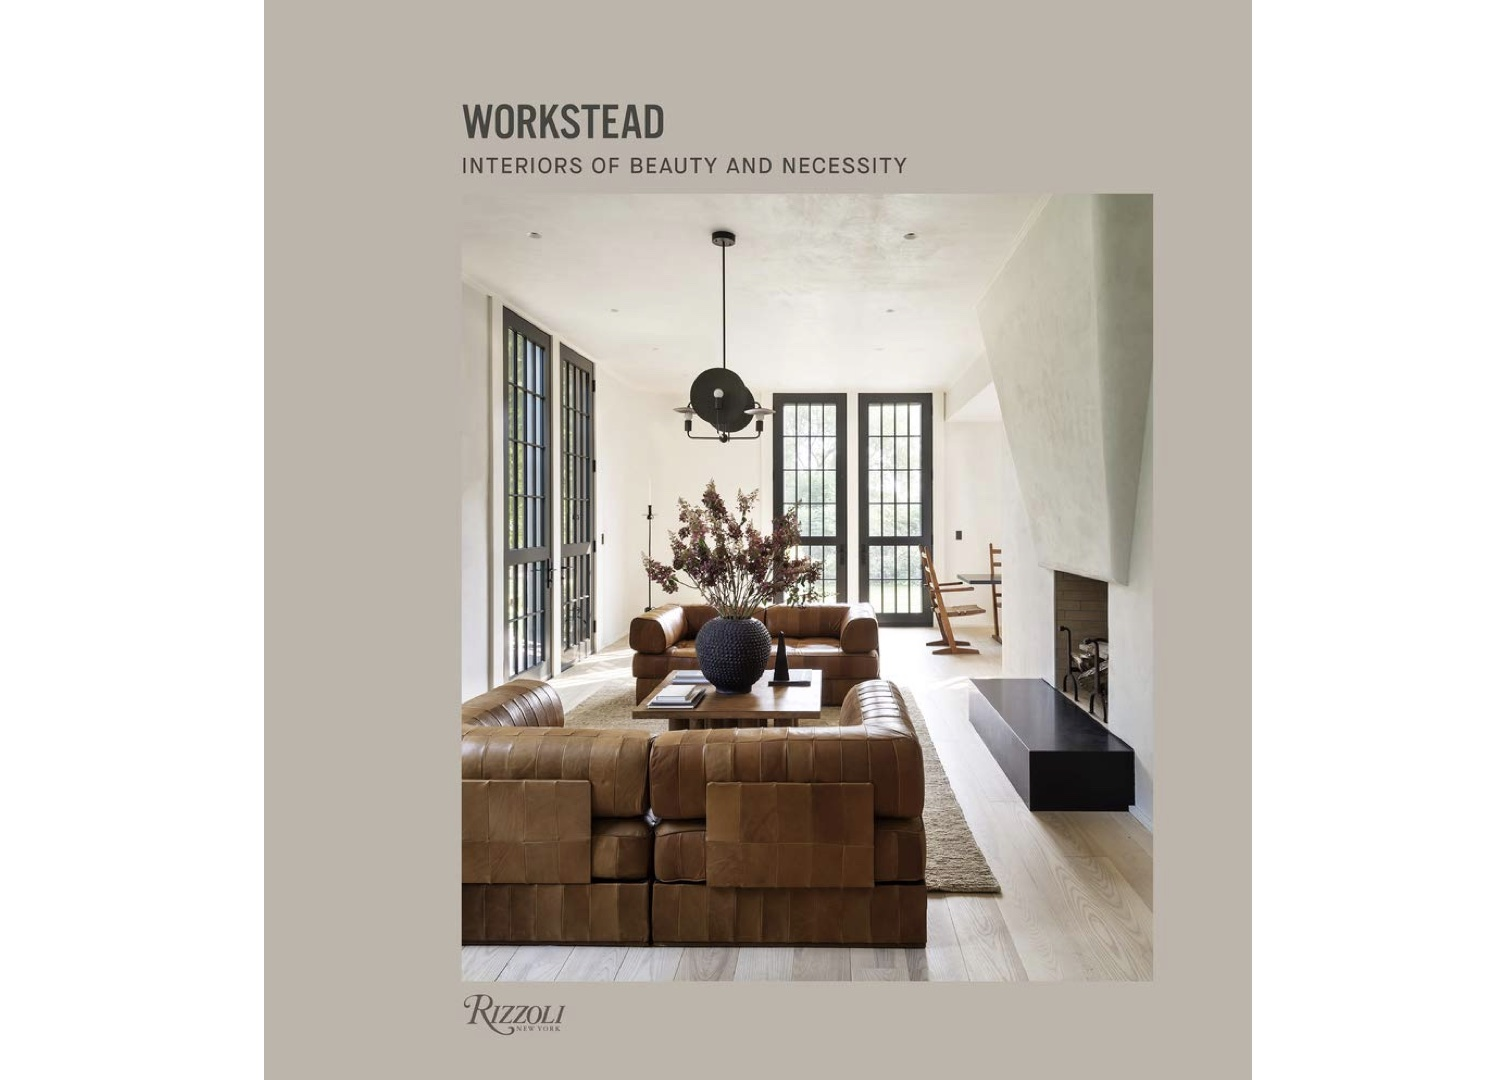 est living workstead Interiors Of Beauty And Necessity